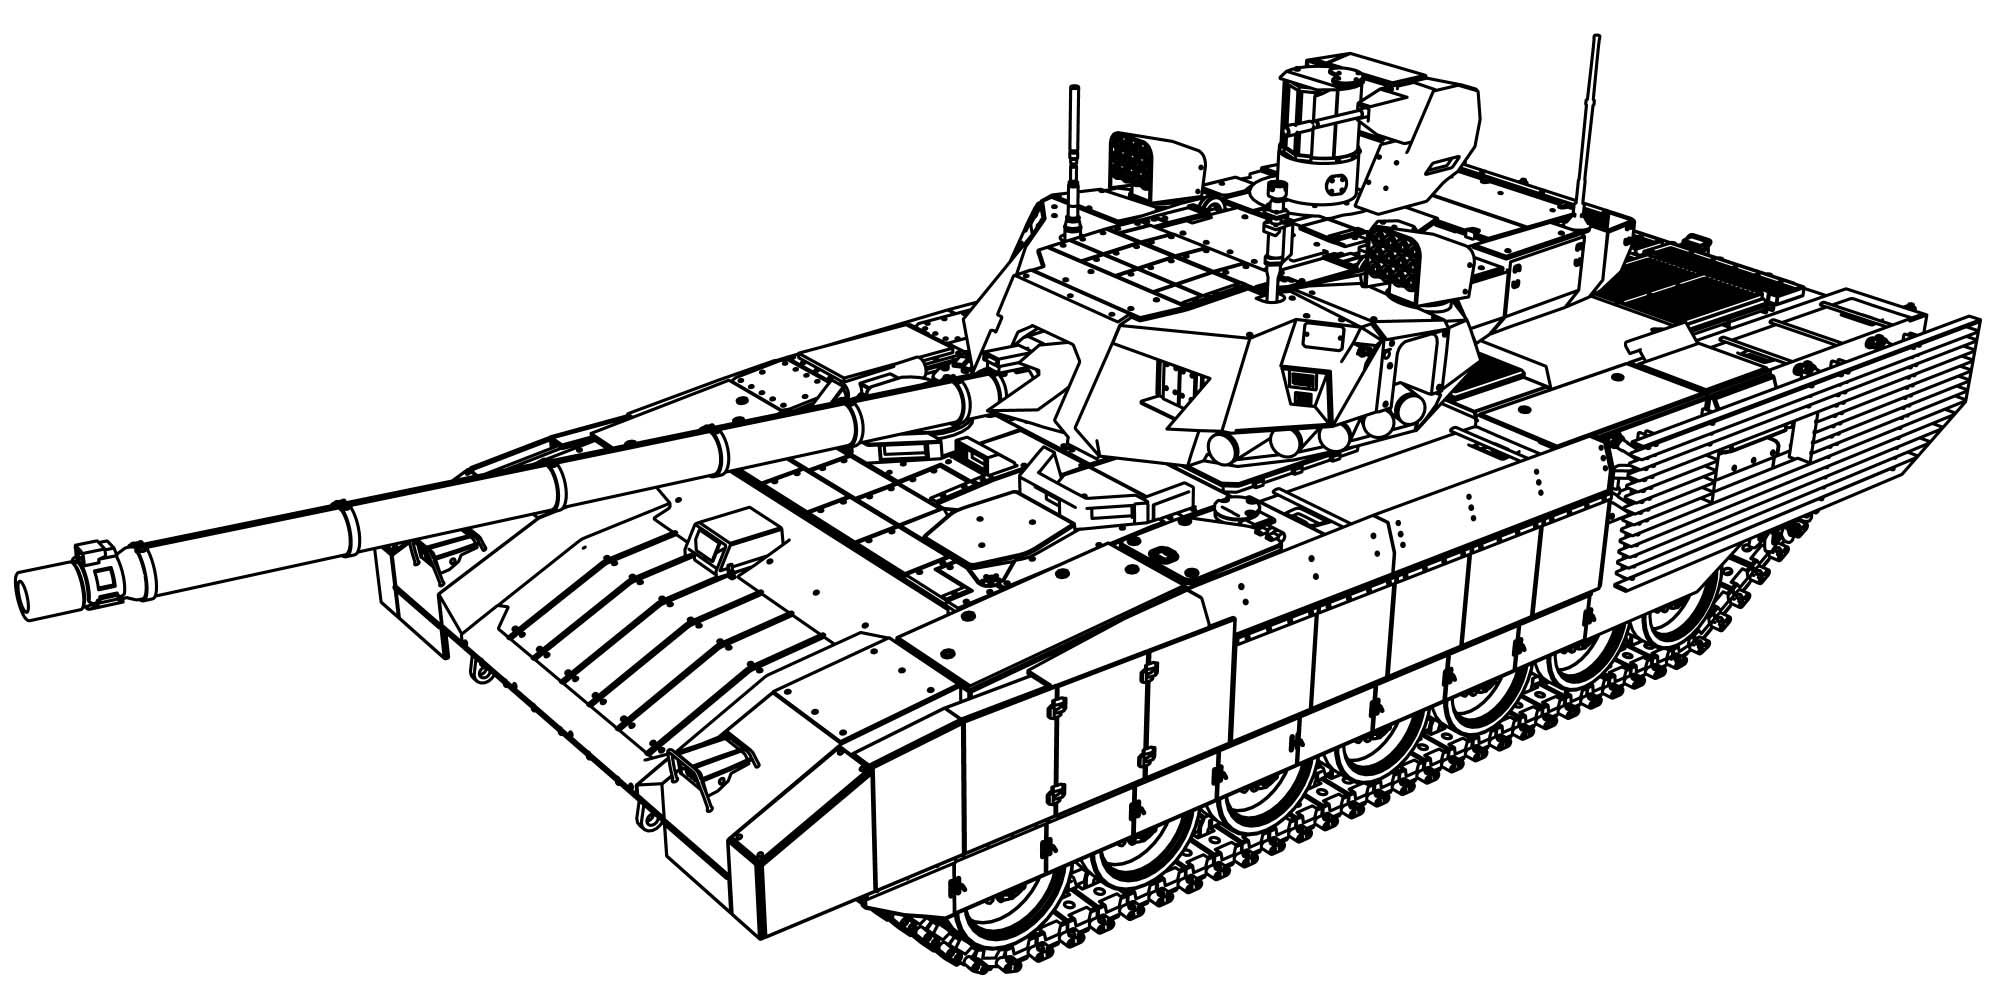 awesome T 14 Armata Tank Perspective View Coloring Page